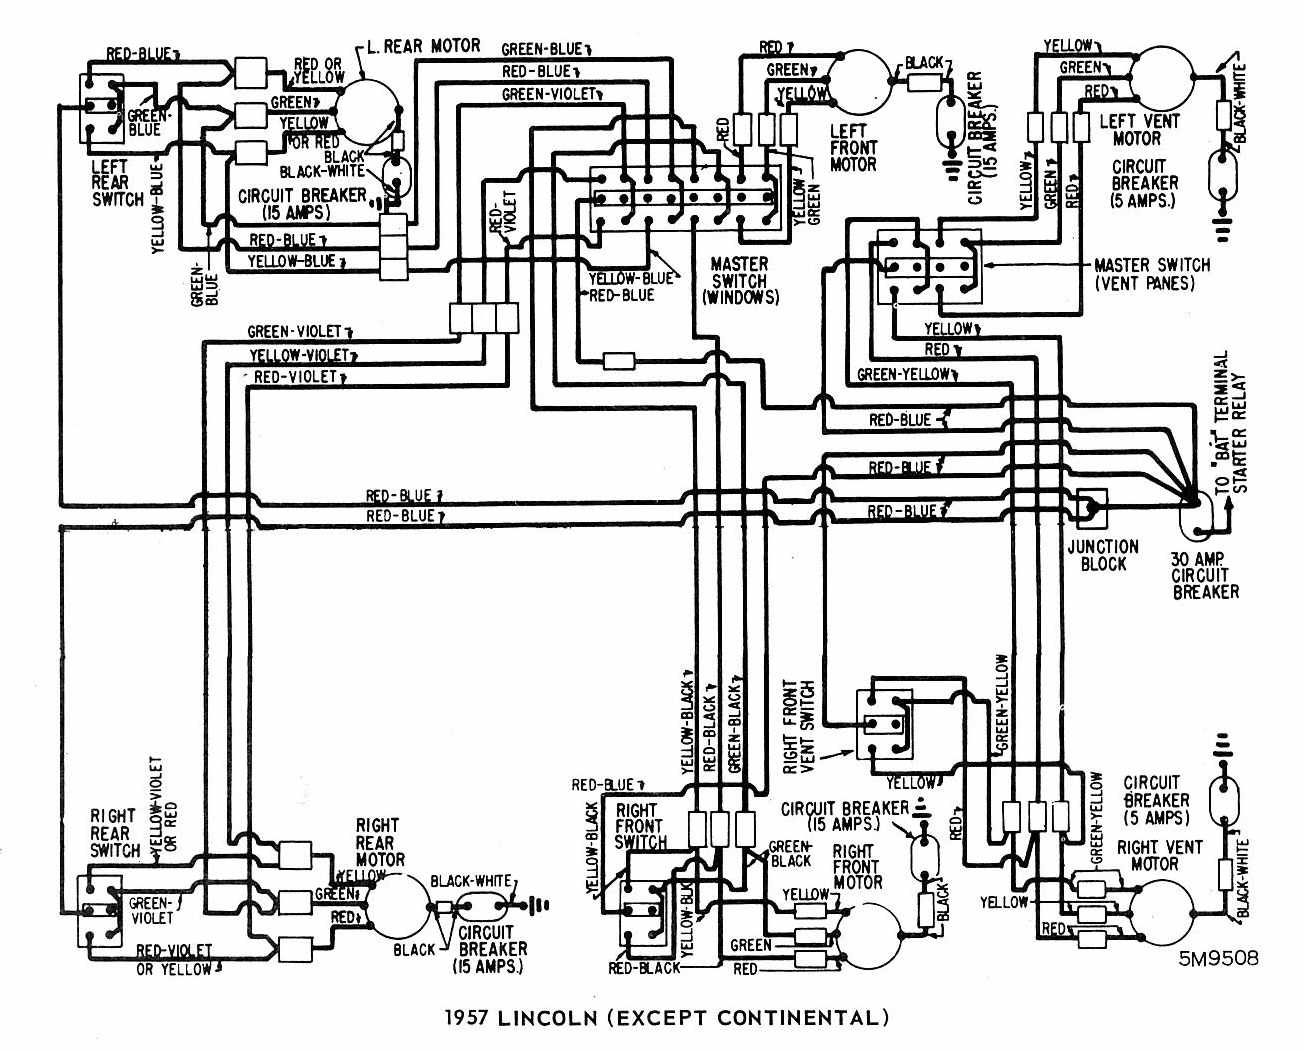 Windows Wiring Diagram Of 1957 Ford Lincoln Diagram Floor Plans Gallery